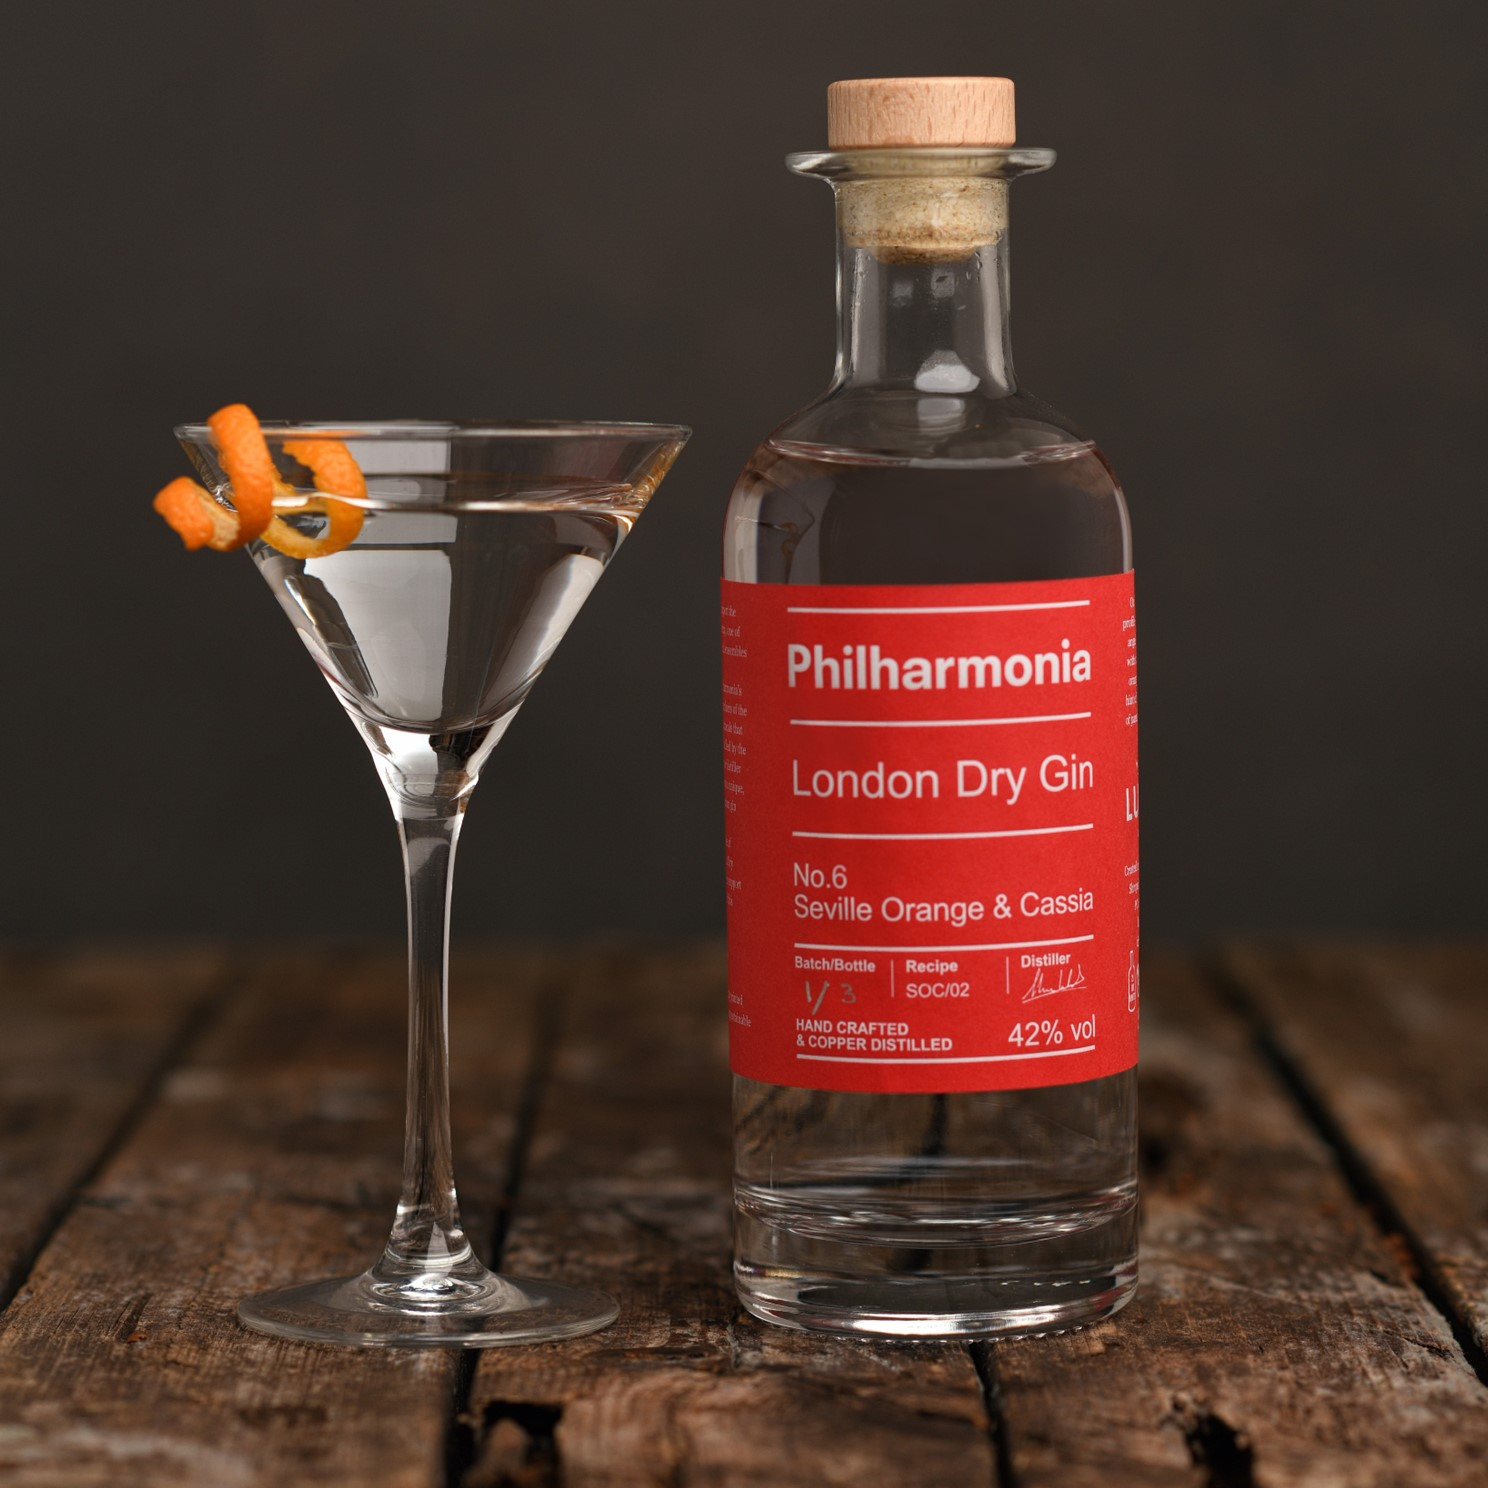 Press Release - Philharmonia Gin